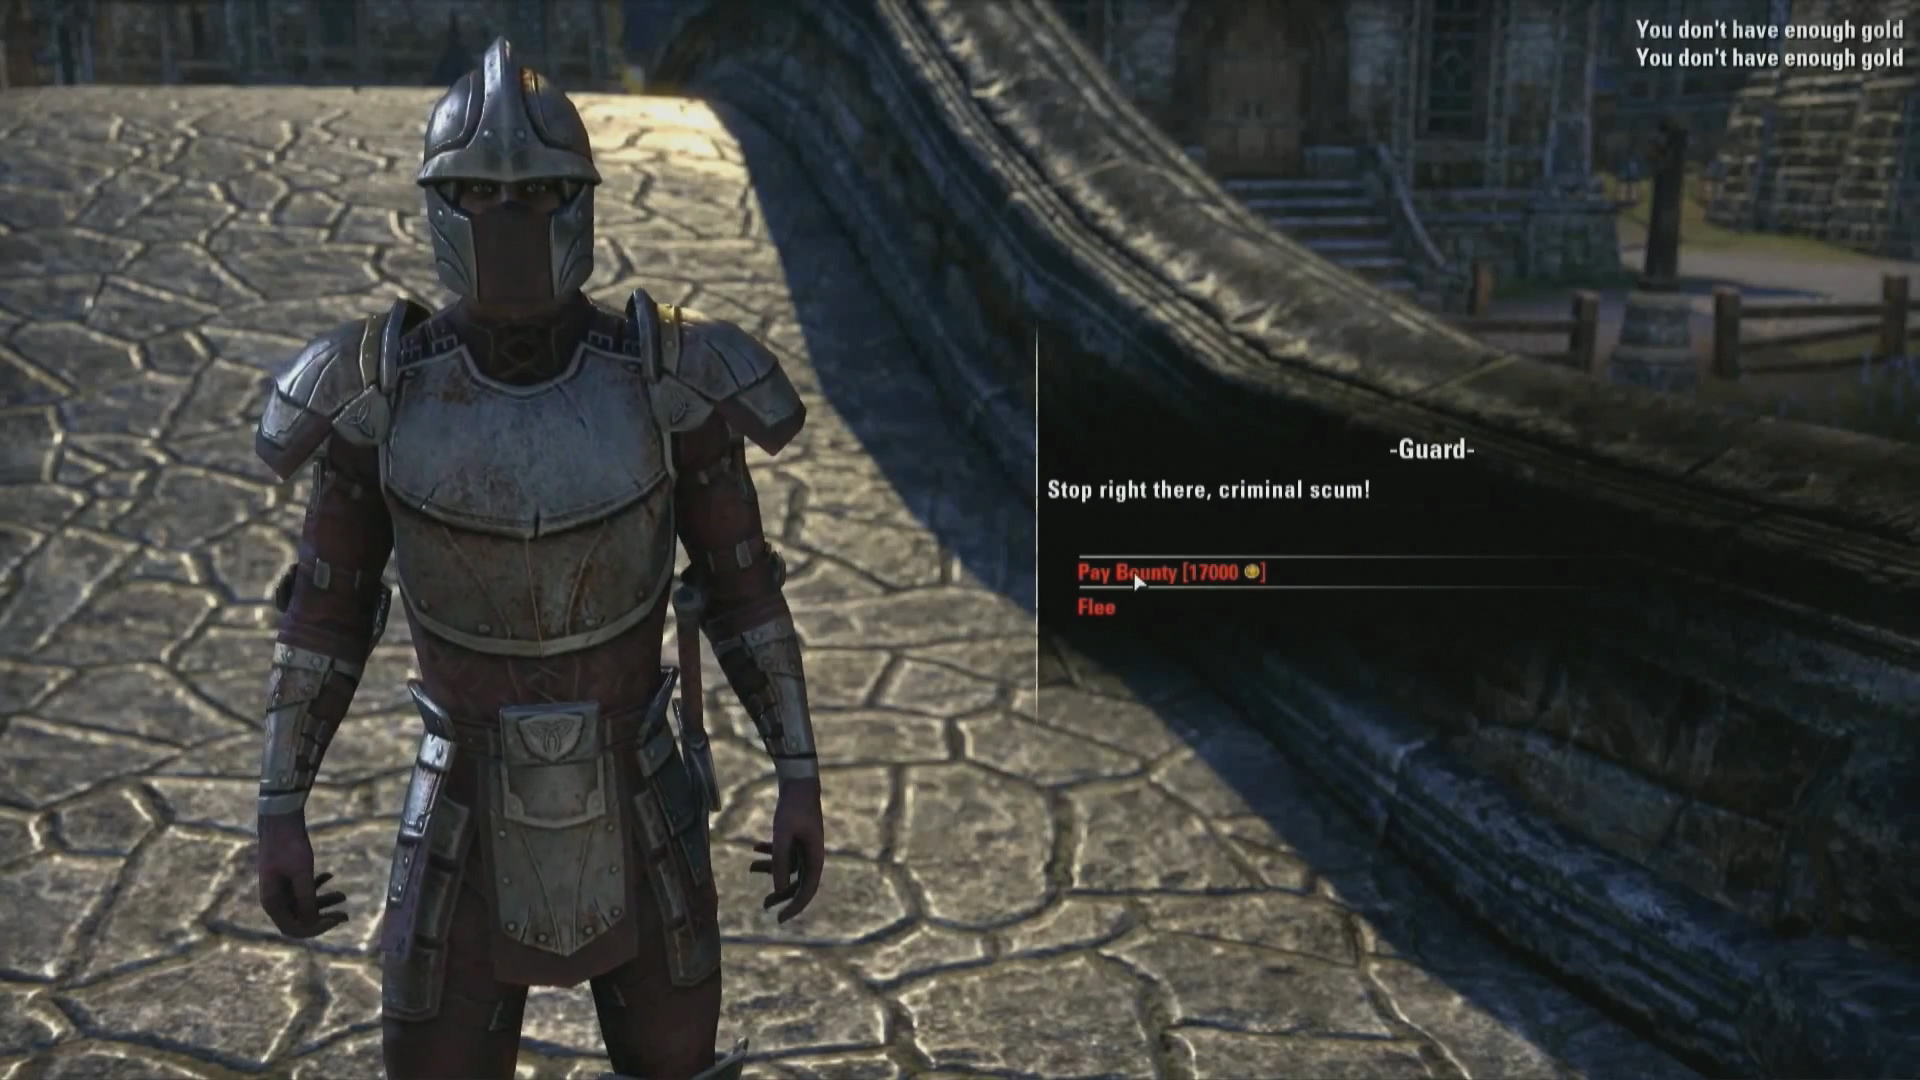 Righting the ship: a look at Elder Scrolls Online's future | PC Gamer